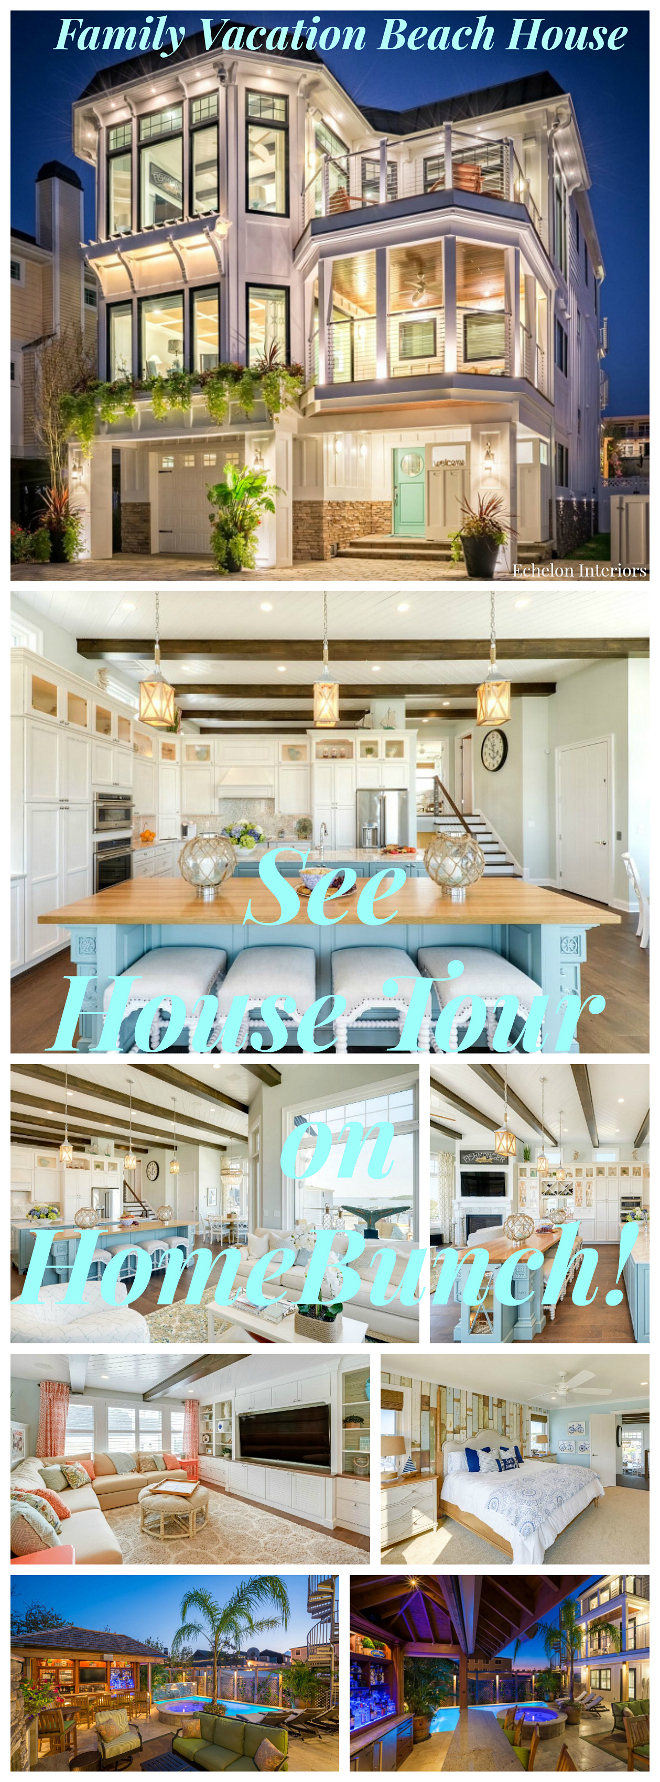 Family Vacation Beach House. See house tour, paint colors and more sources on Home Bunch. Family Vacation Beach House #FamilyVacationBeachHouse